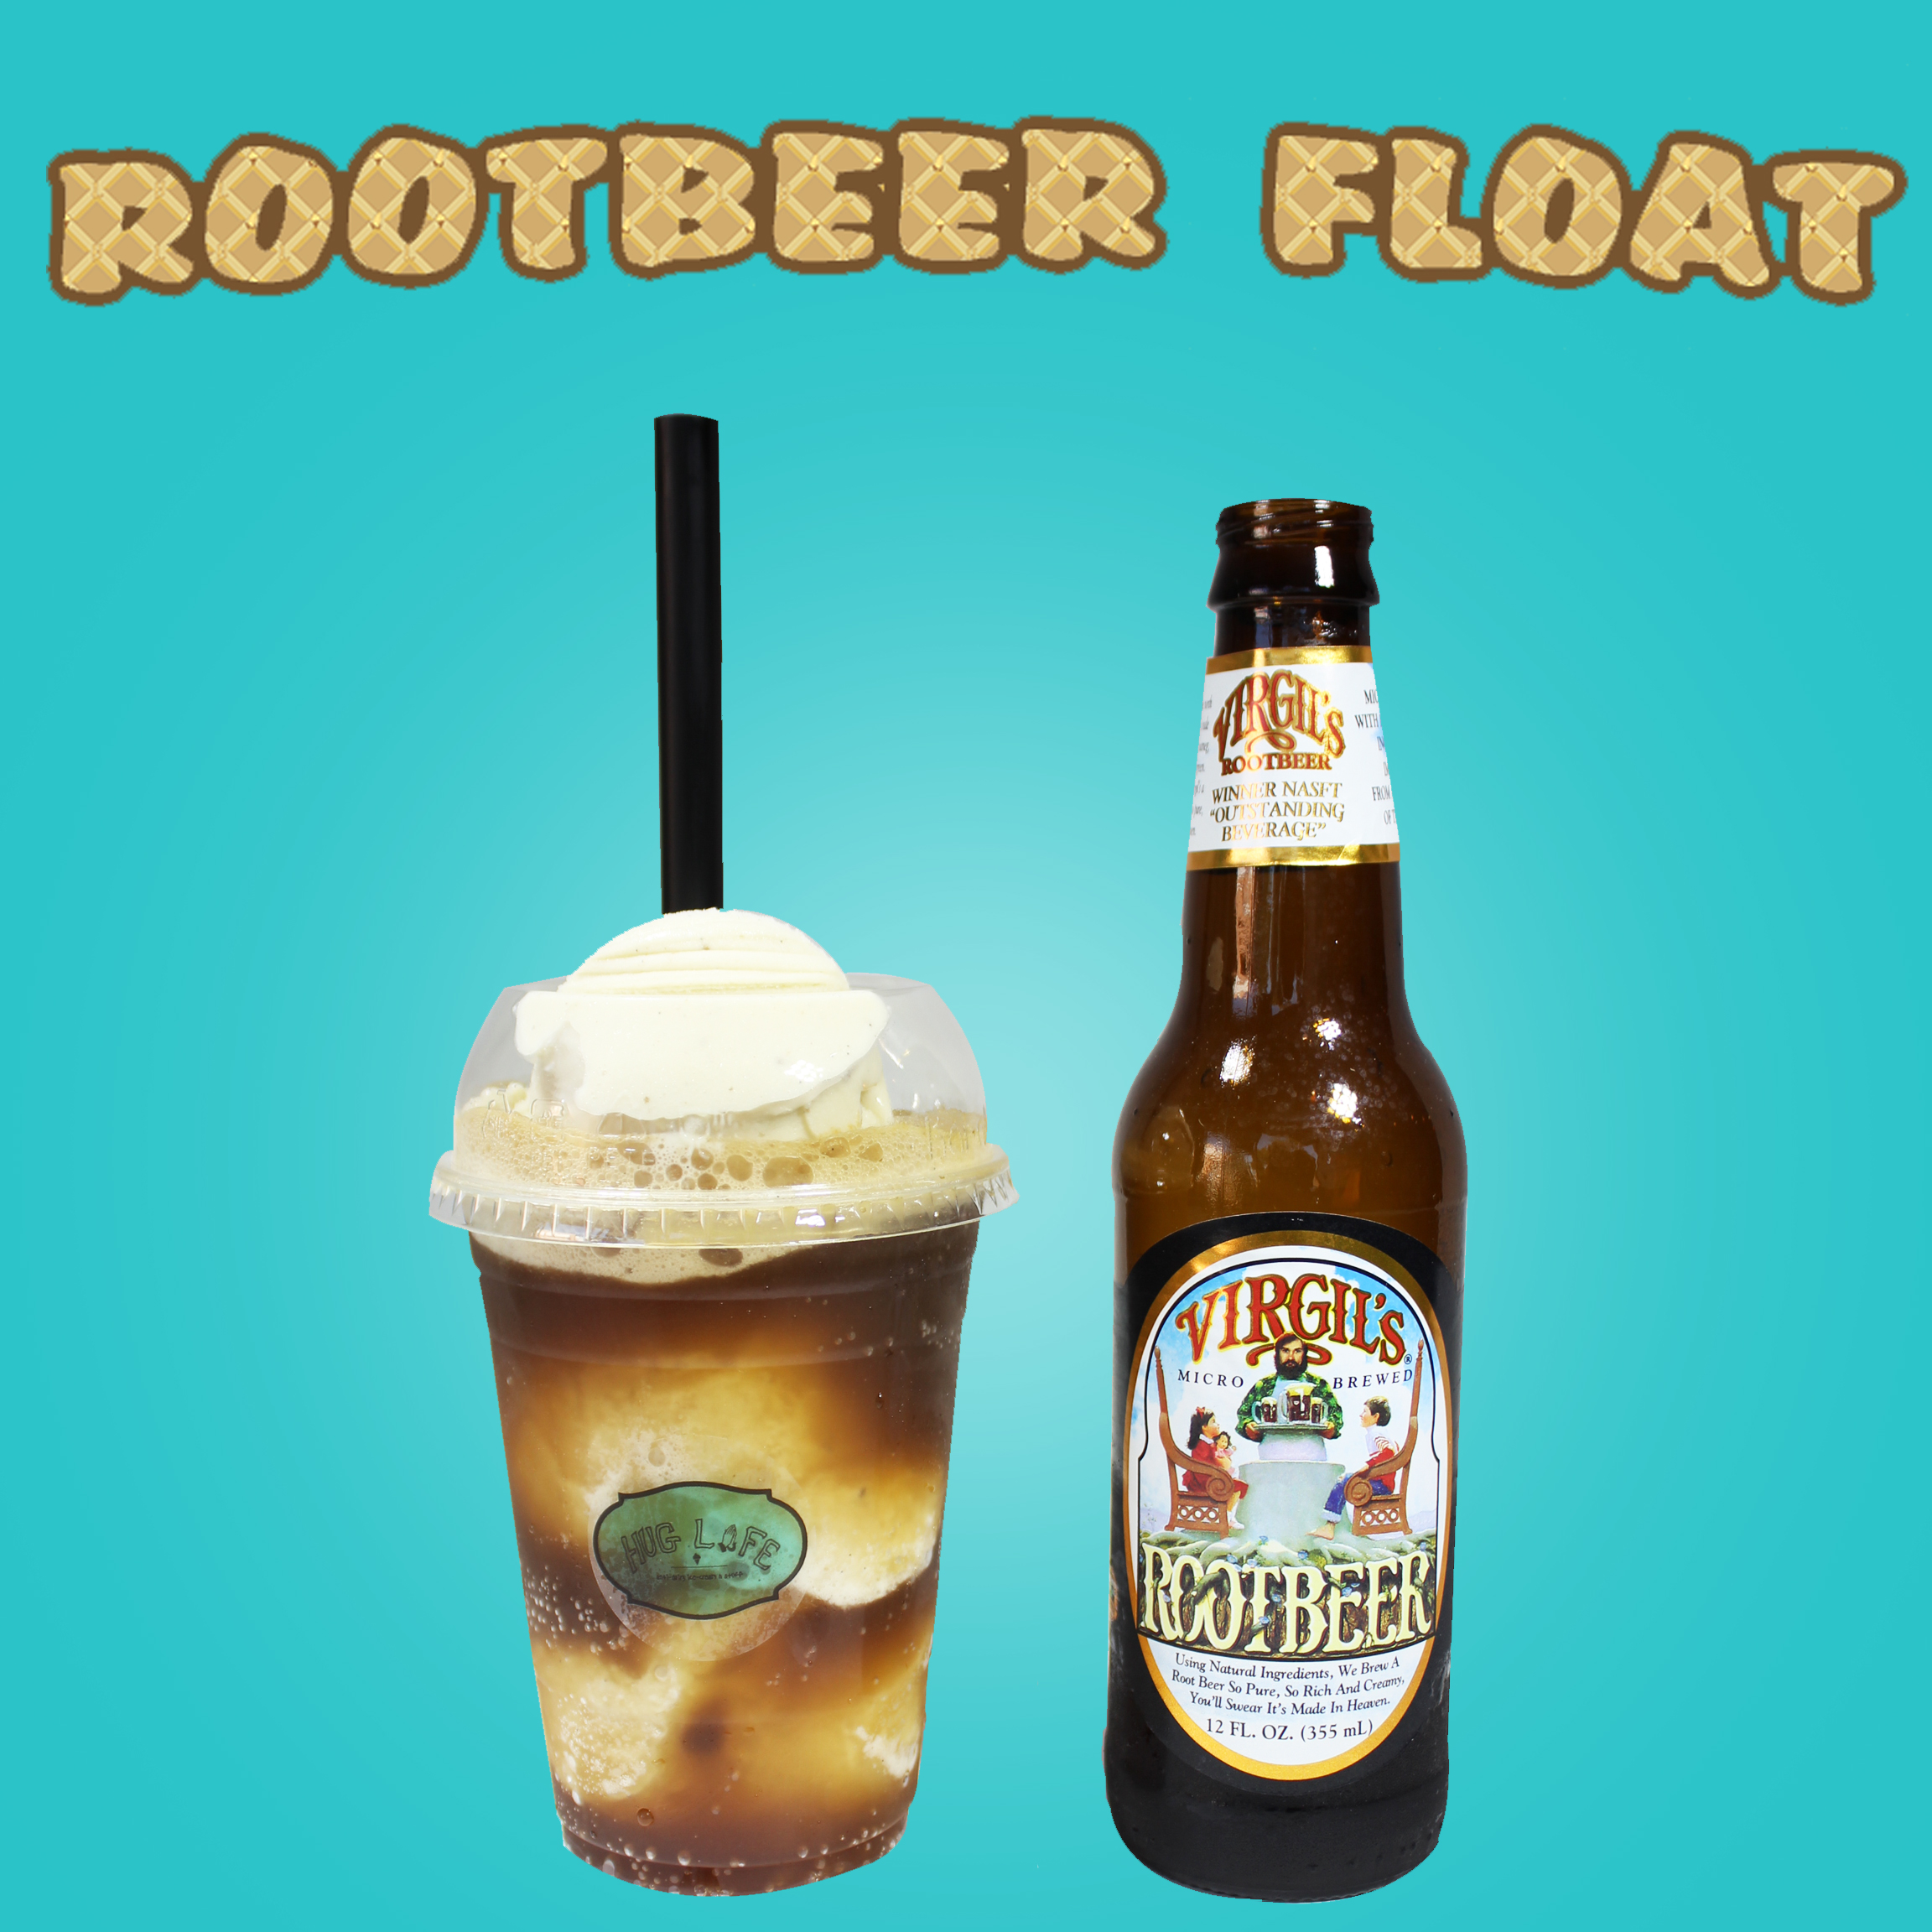 Pair your choice of ice cream with Virgil's Natural Root Beer